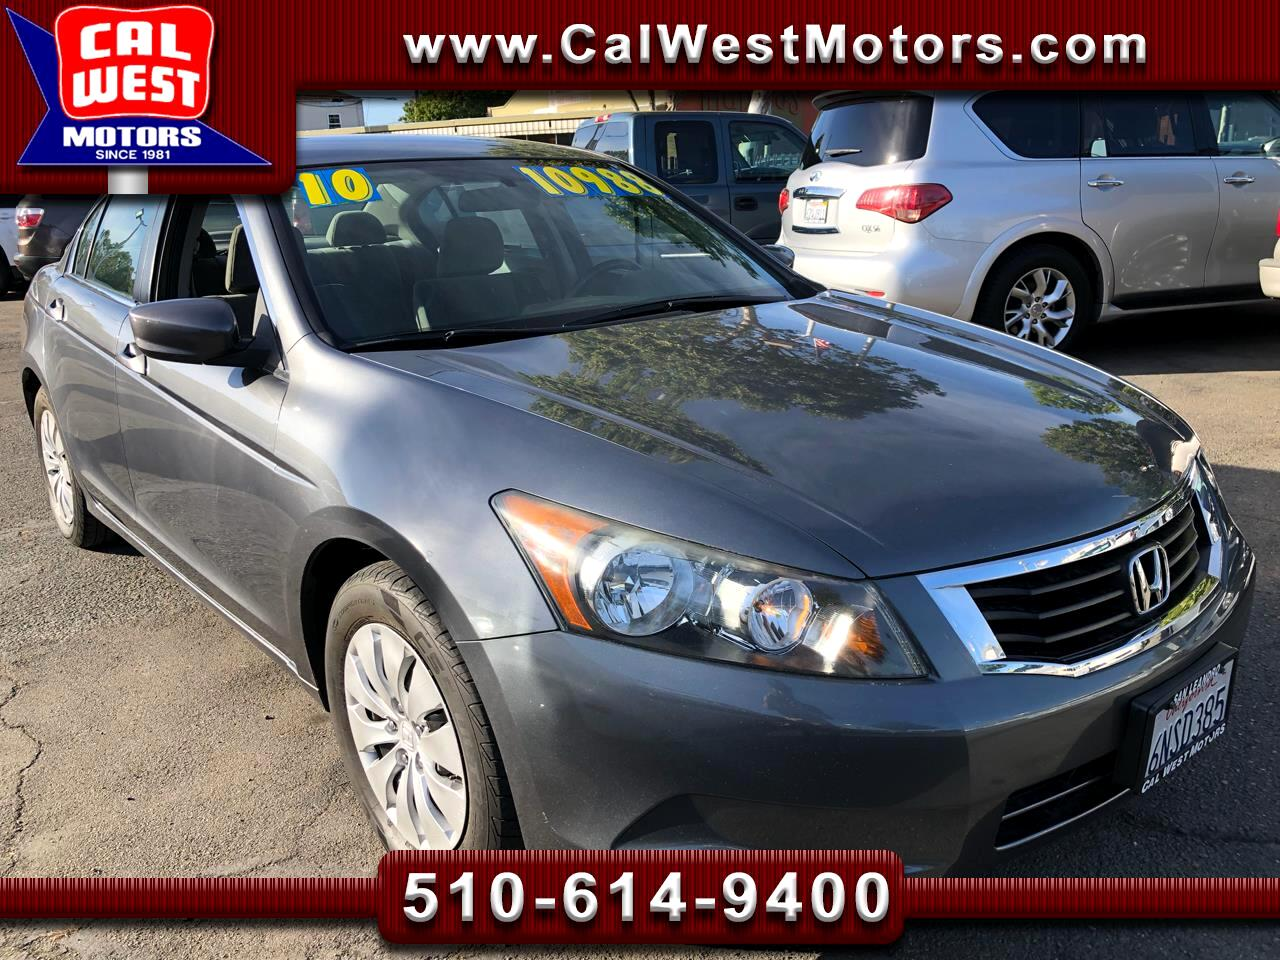 2010 Honda Accord LX Sedan i-VTEC 5-Spd Auto 1Owner AUX ExprtMaintnc